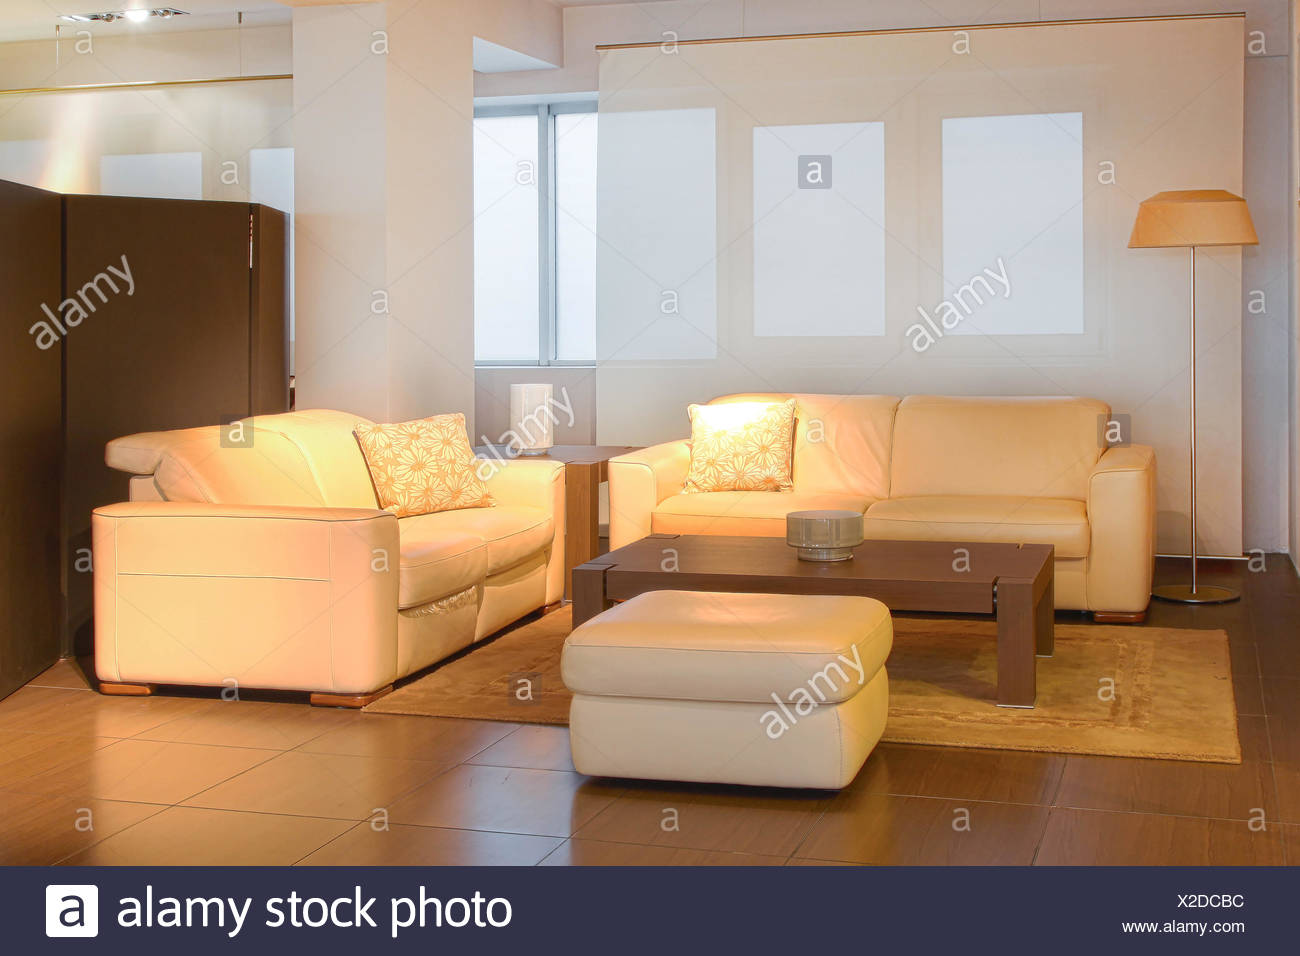 Modern livnig room with two leather sofas Stock Photo ...